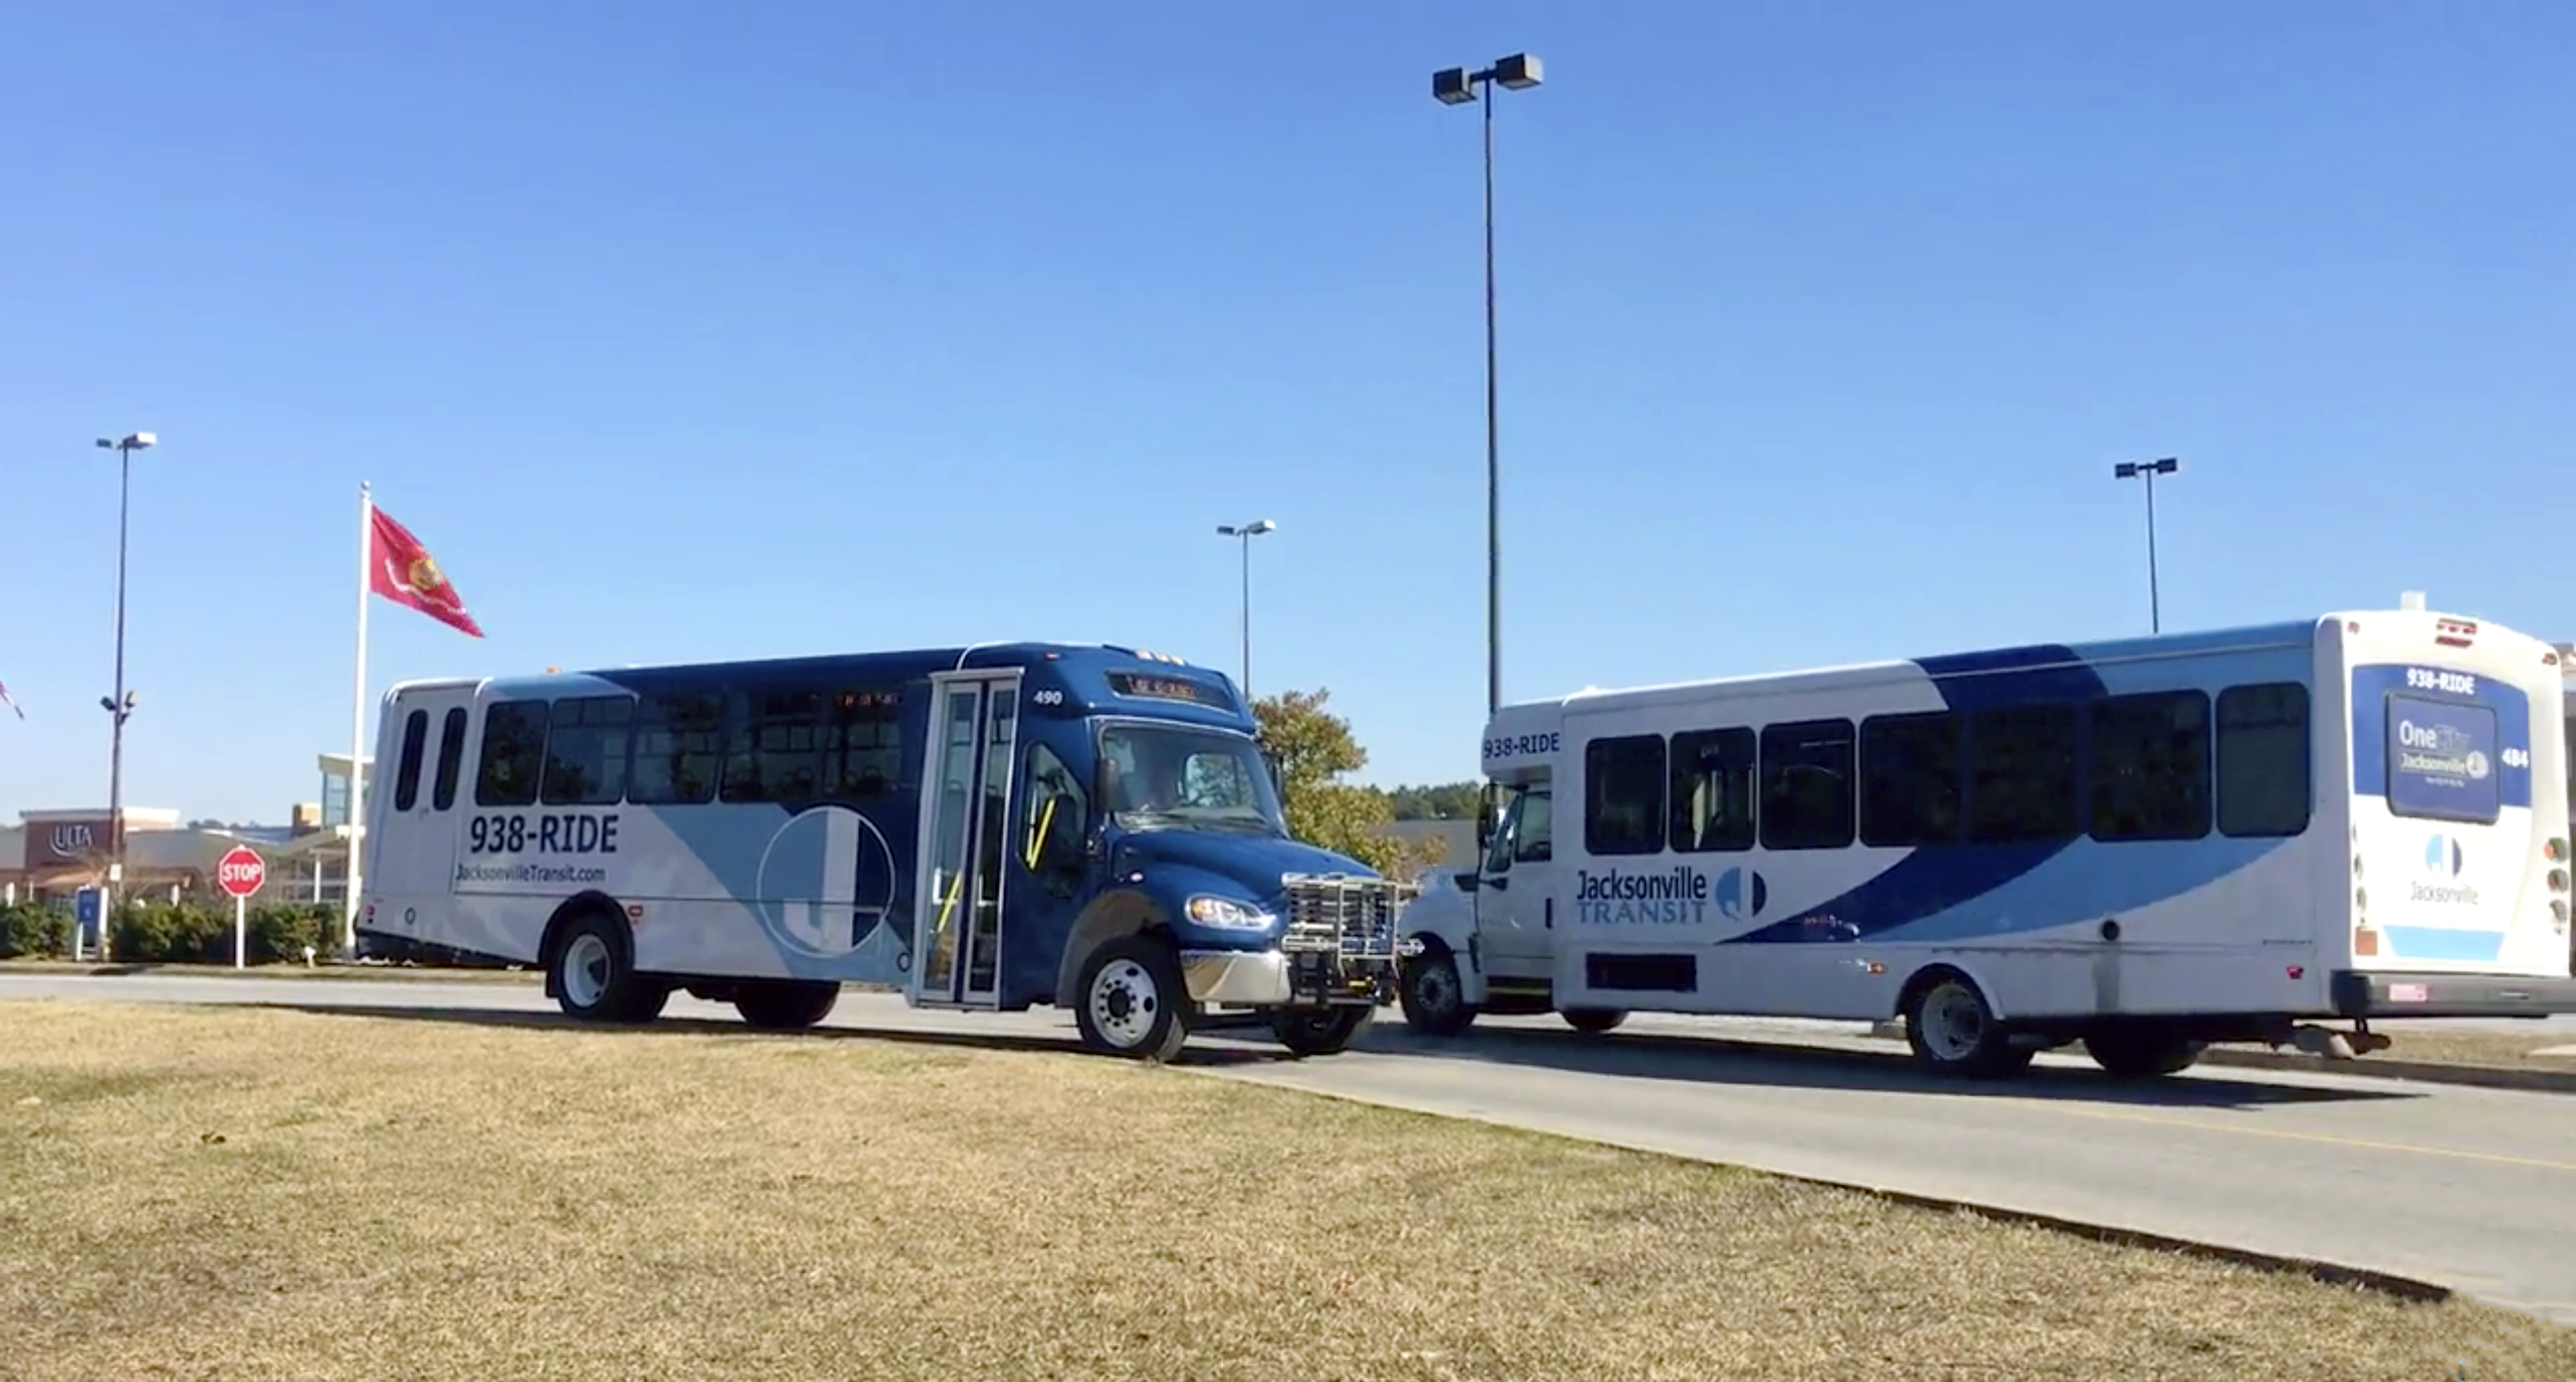 Transit Buses - New and Old